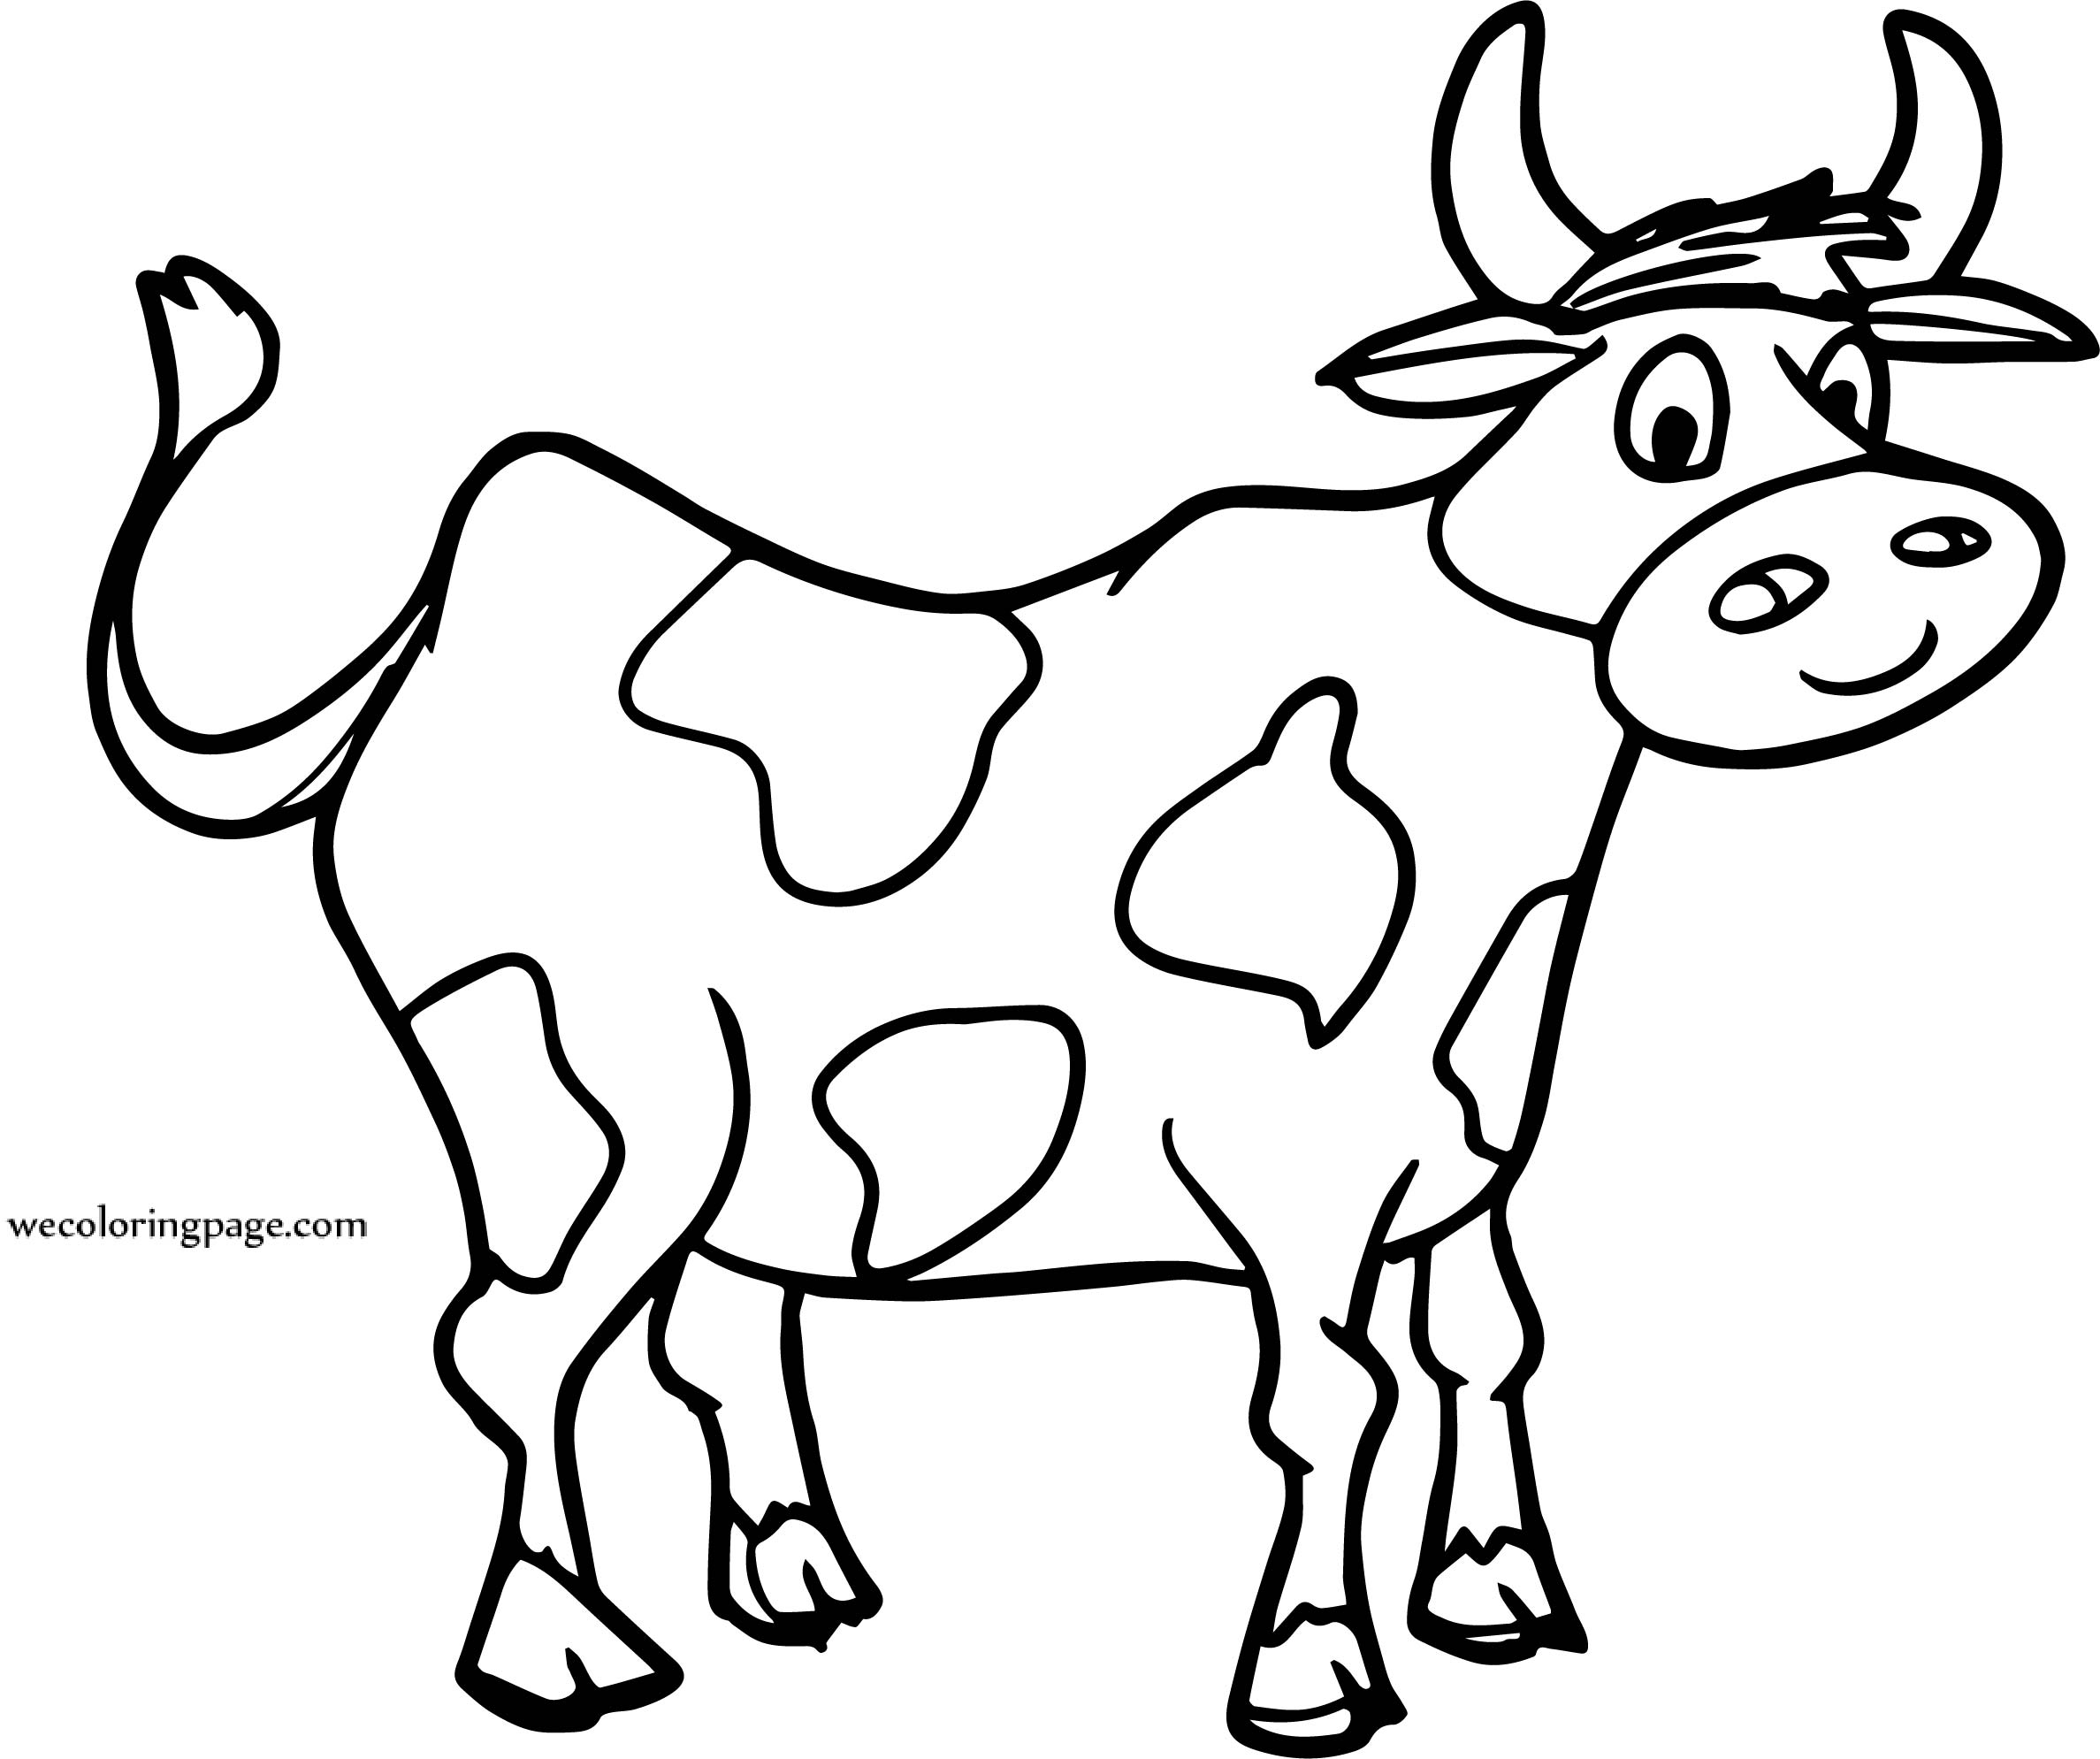 2375x1989 Baby Cow Face Drawing Clipart Outline Step Realistic Cartoon